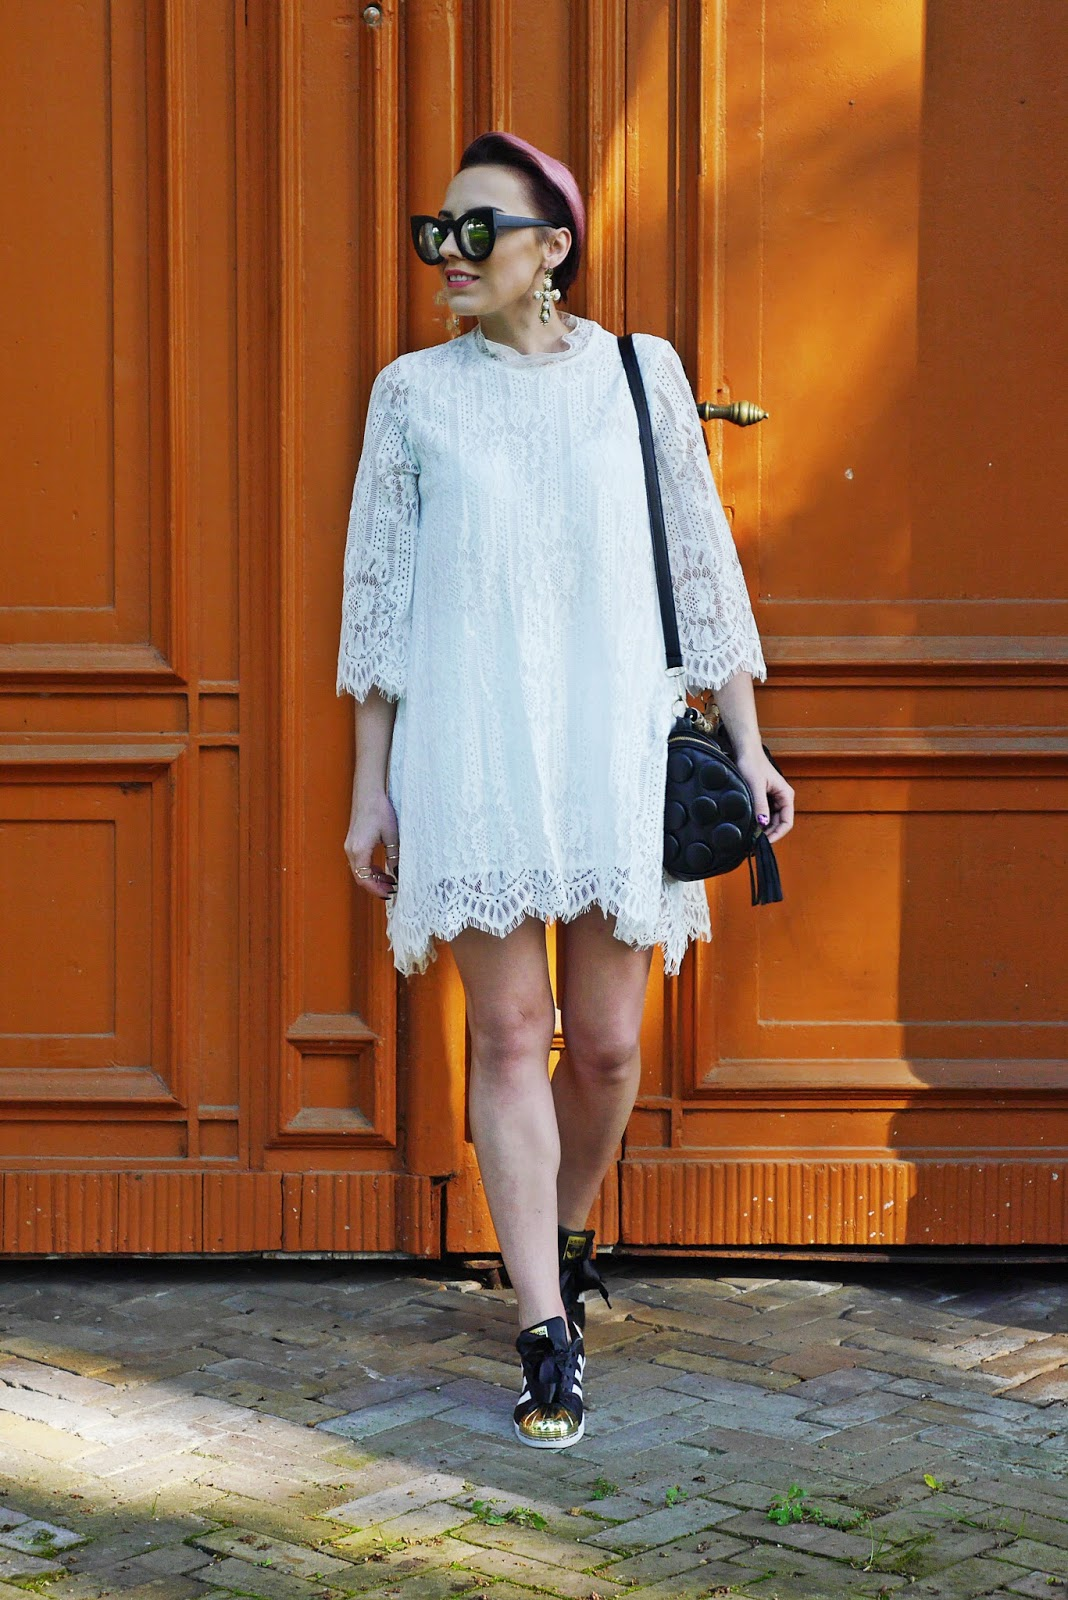 blog_modowy_karyn_lace_dress_white_adidas_superstar_ootd_look_250517a